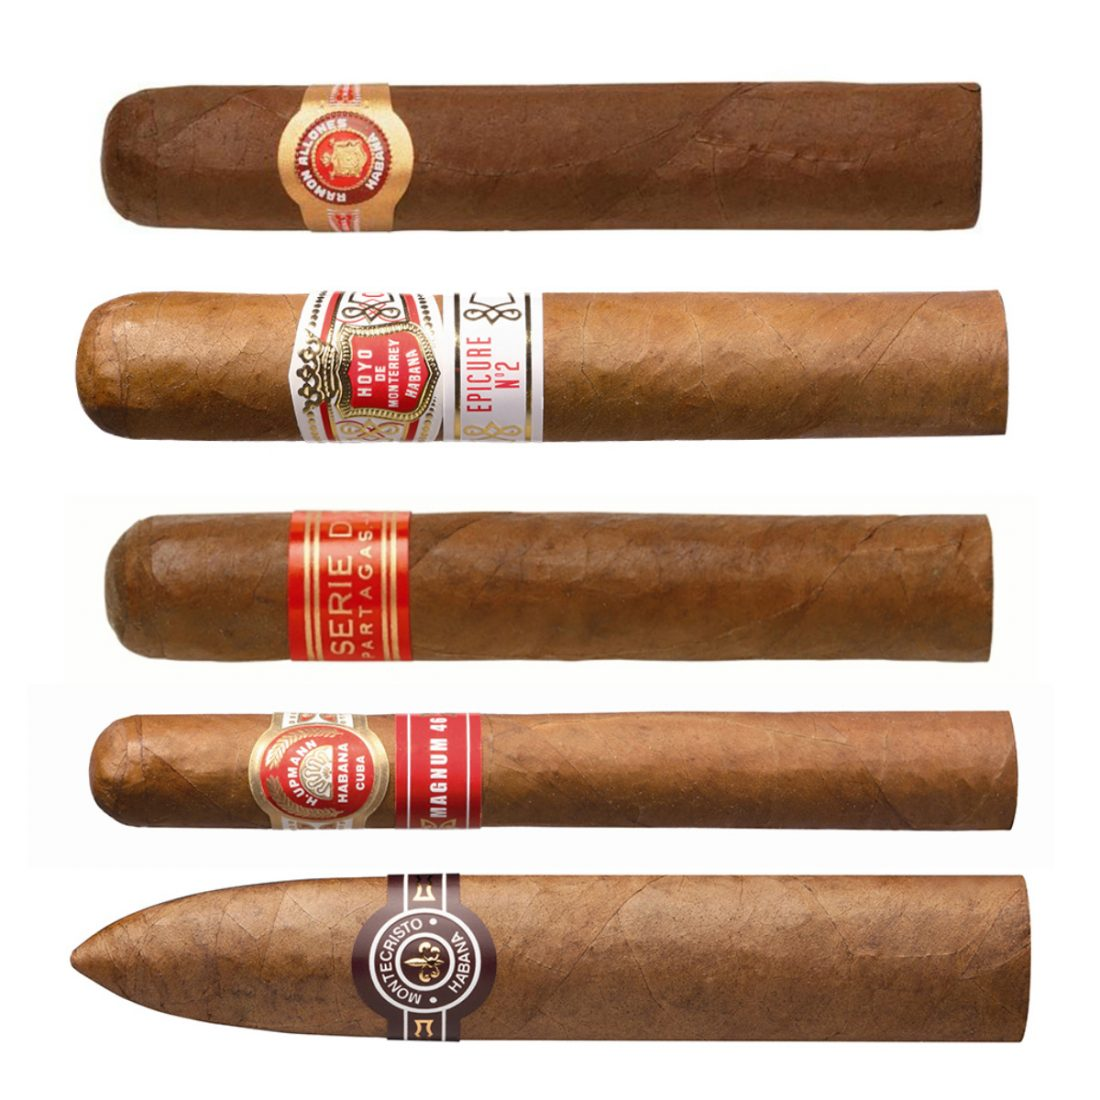 This week's Top 5 cigars from Donald D. Sutcliffe of Sutcliffe & Son